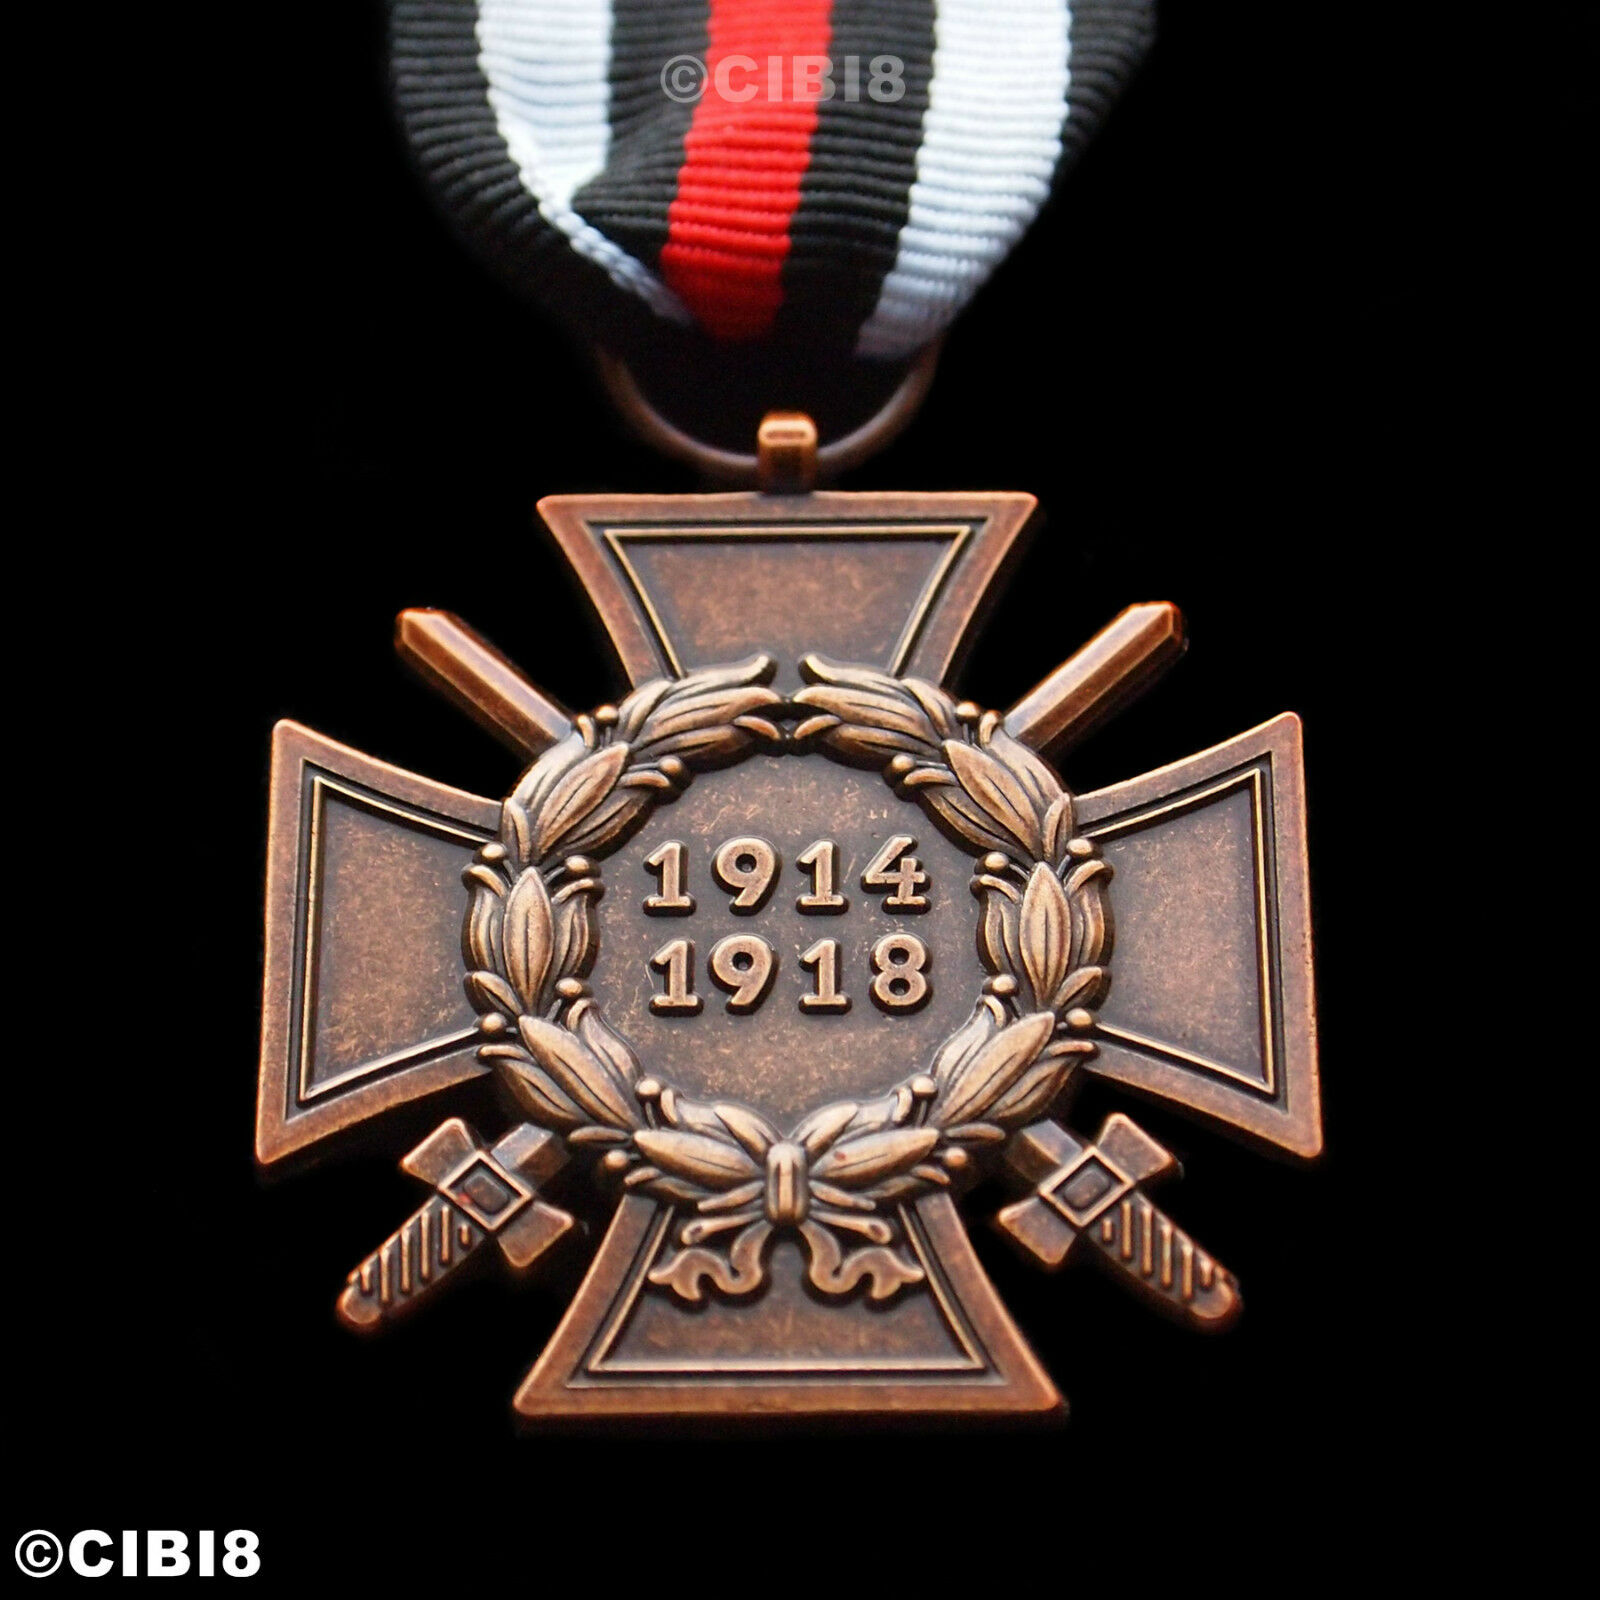 The Honour Cross Of The World War 1914 1918 Ww1 German Hindenburg